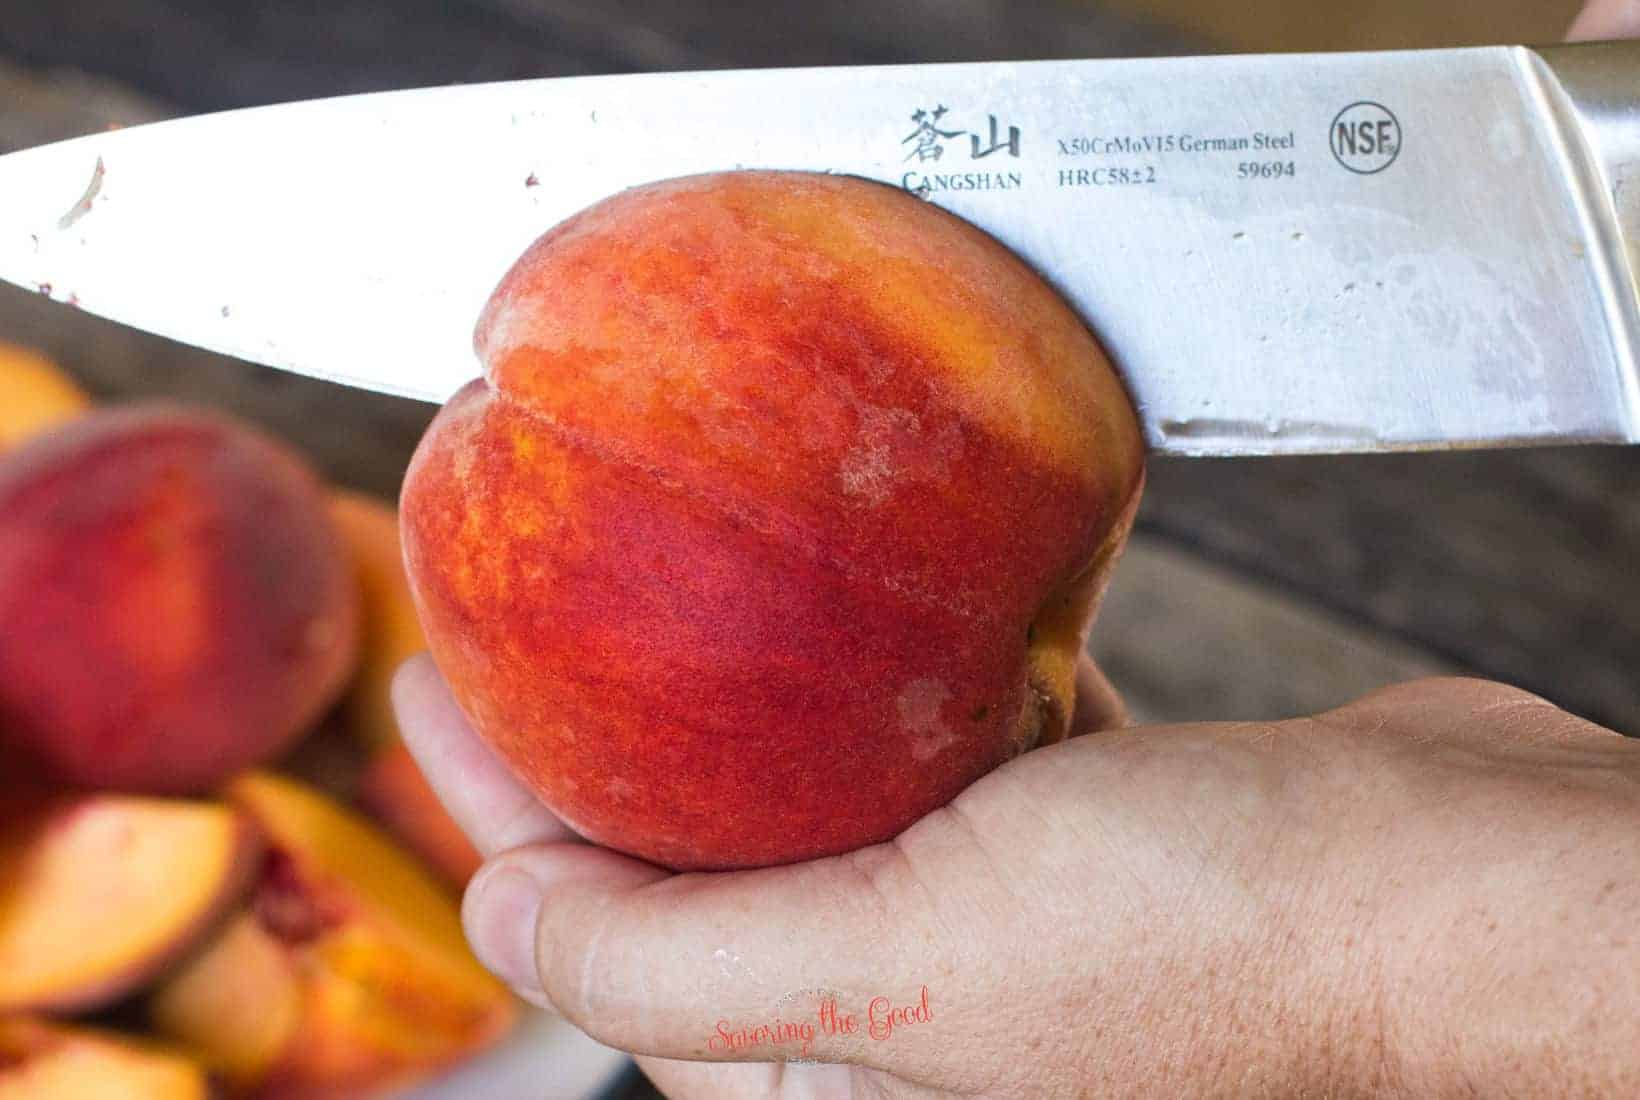 chef knife showing the propper technique for pitting a peach, slicing from end to end to free the flesh from the pit